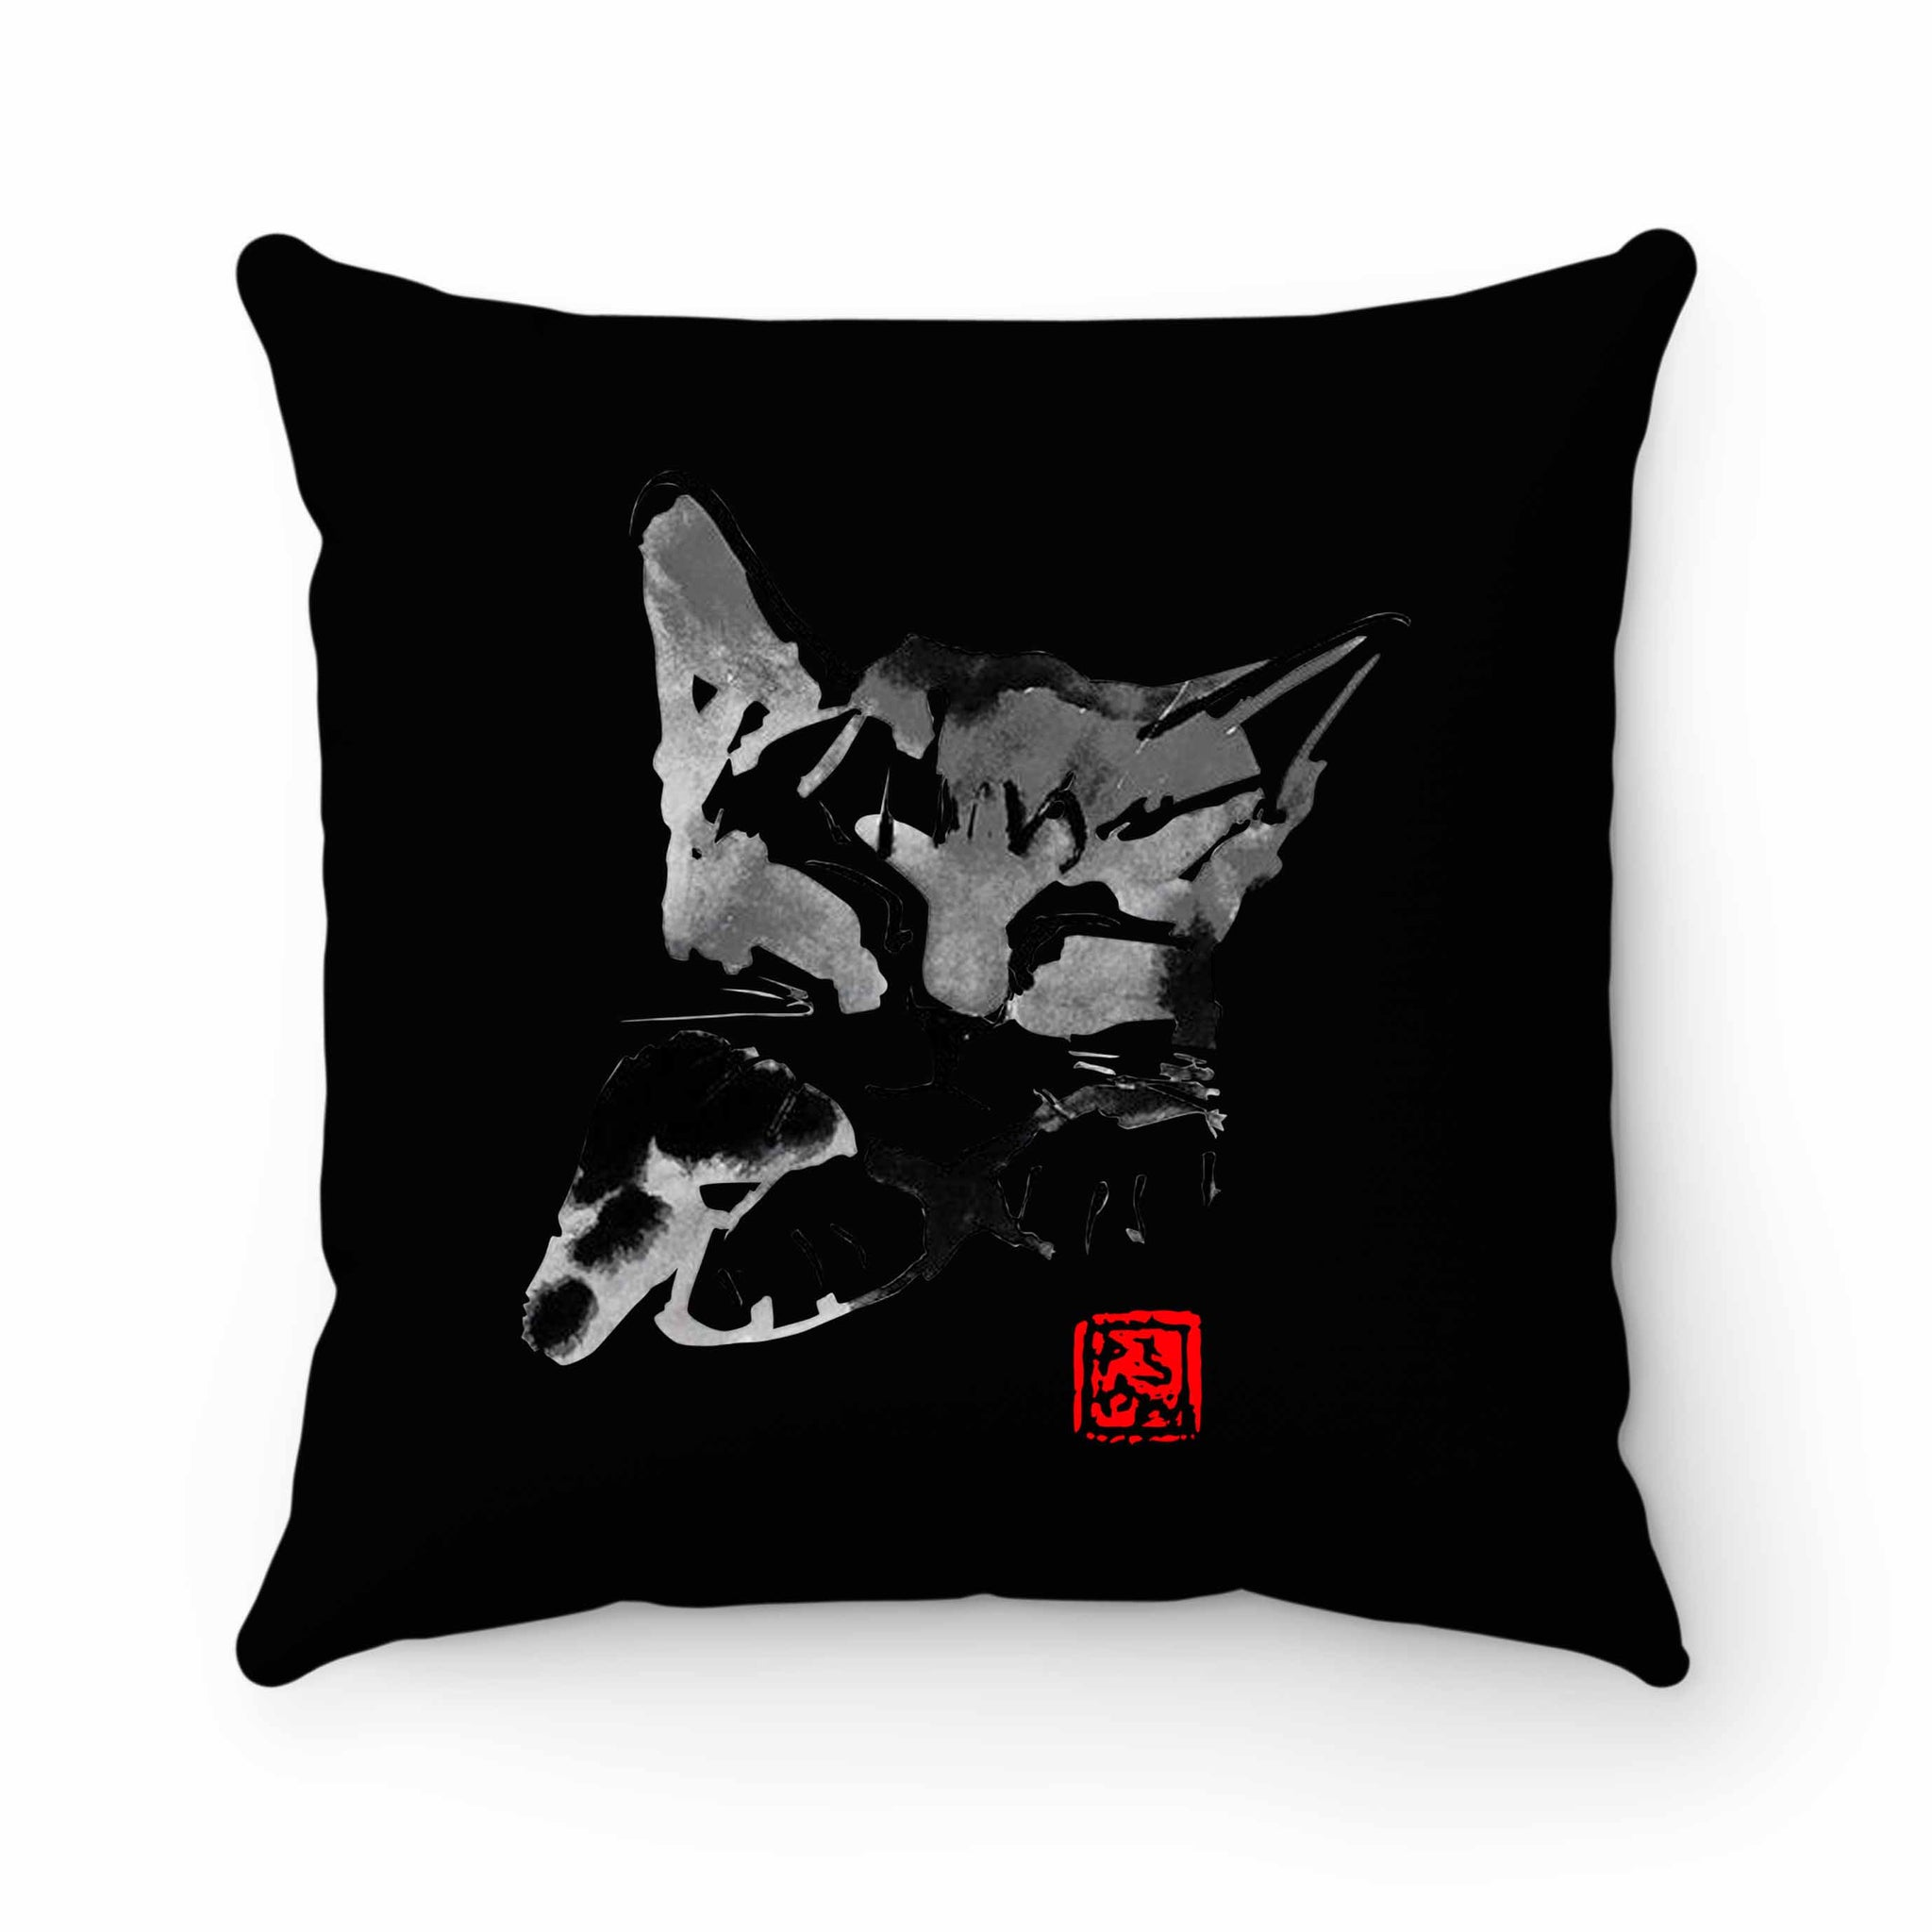 Sleeping Cat 1 Pillow Case Cover